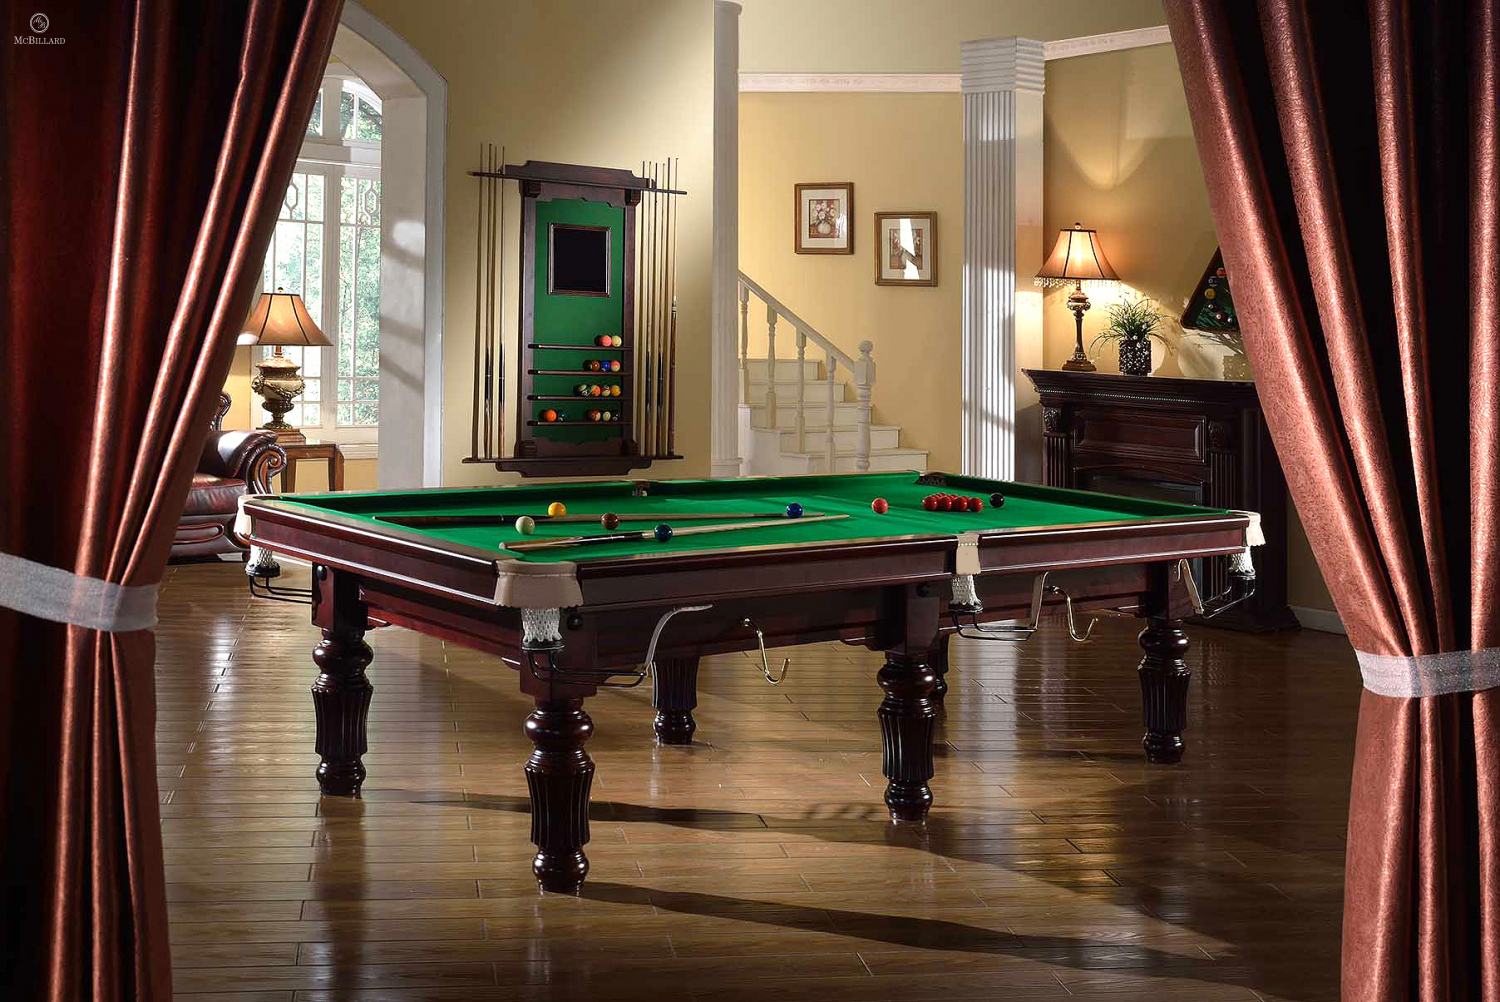 Snooker Table Robertson - Tournament - 10 ft. | McBillard